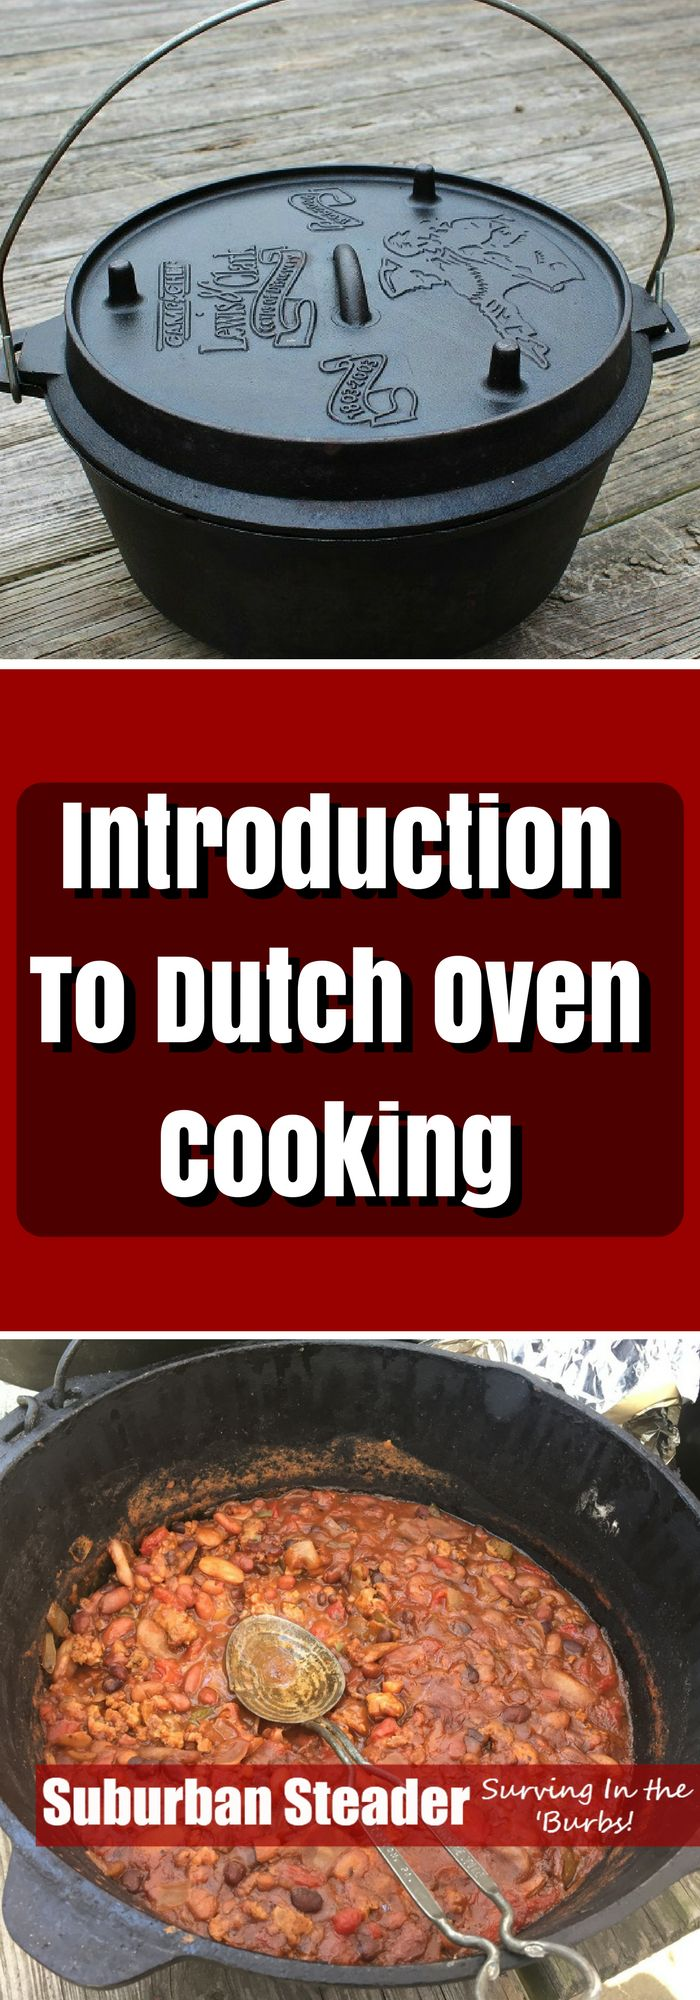 introduction to cooking This rich, flavorful culinary tradition emphasizes a certain slow and methodical approach to cooking.